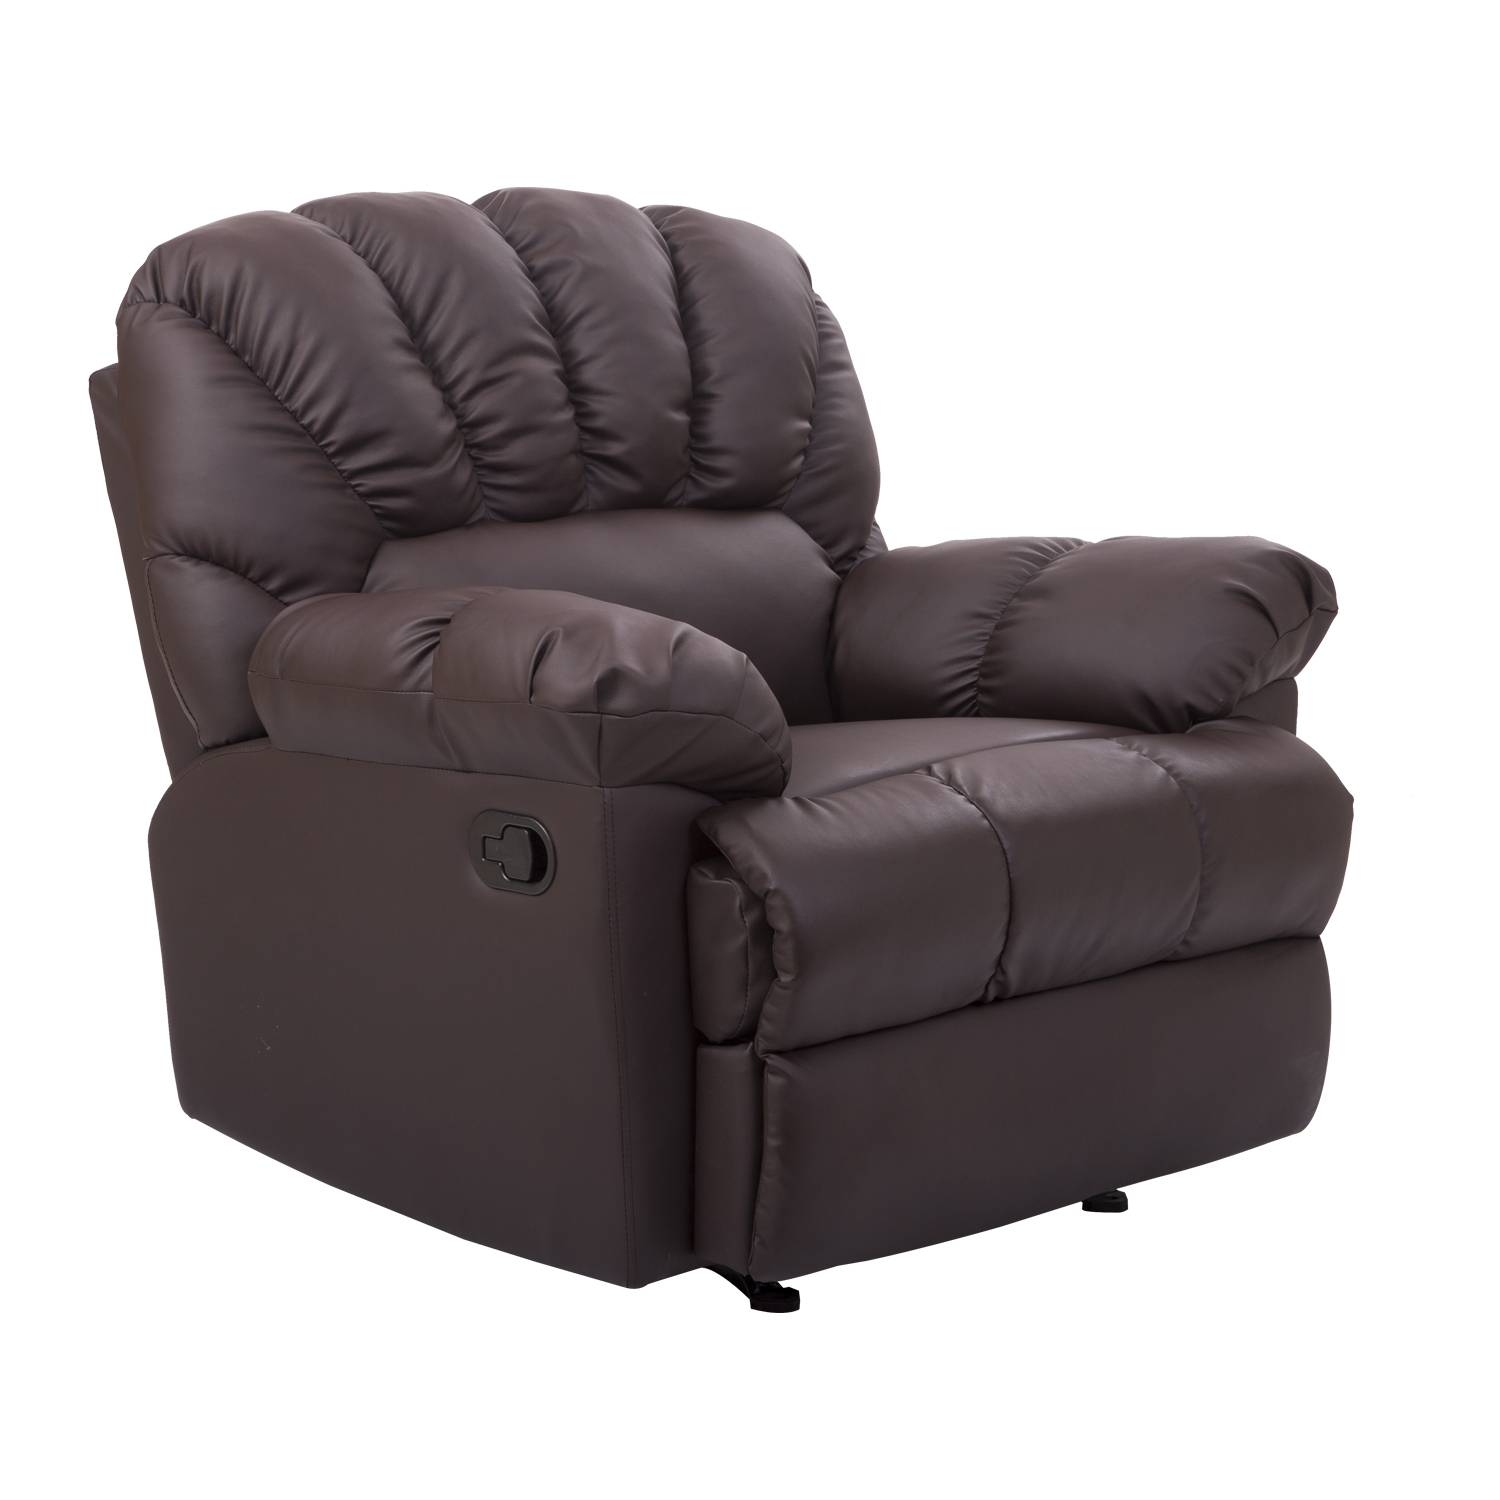 Homcom Pu Leather Rocking Sofa Chair Recliner - Cream - Walmart intended for Sofa Chair Recliner (Image 14 of 30)